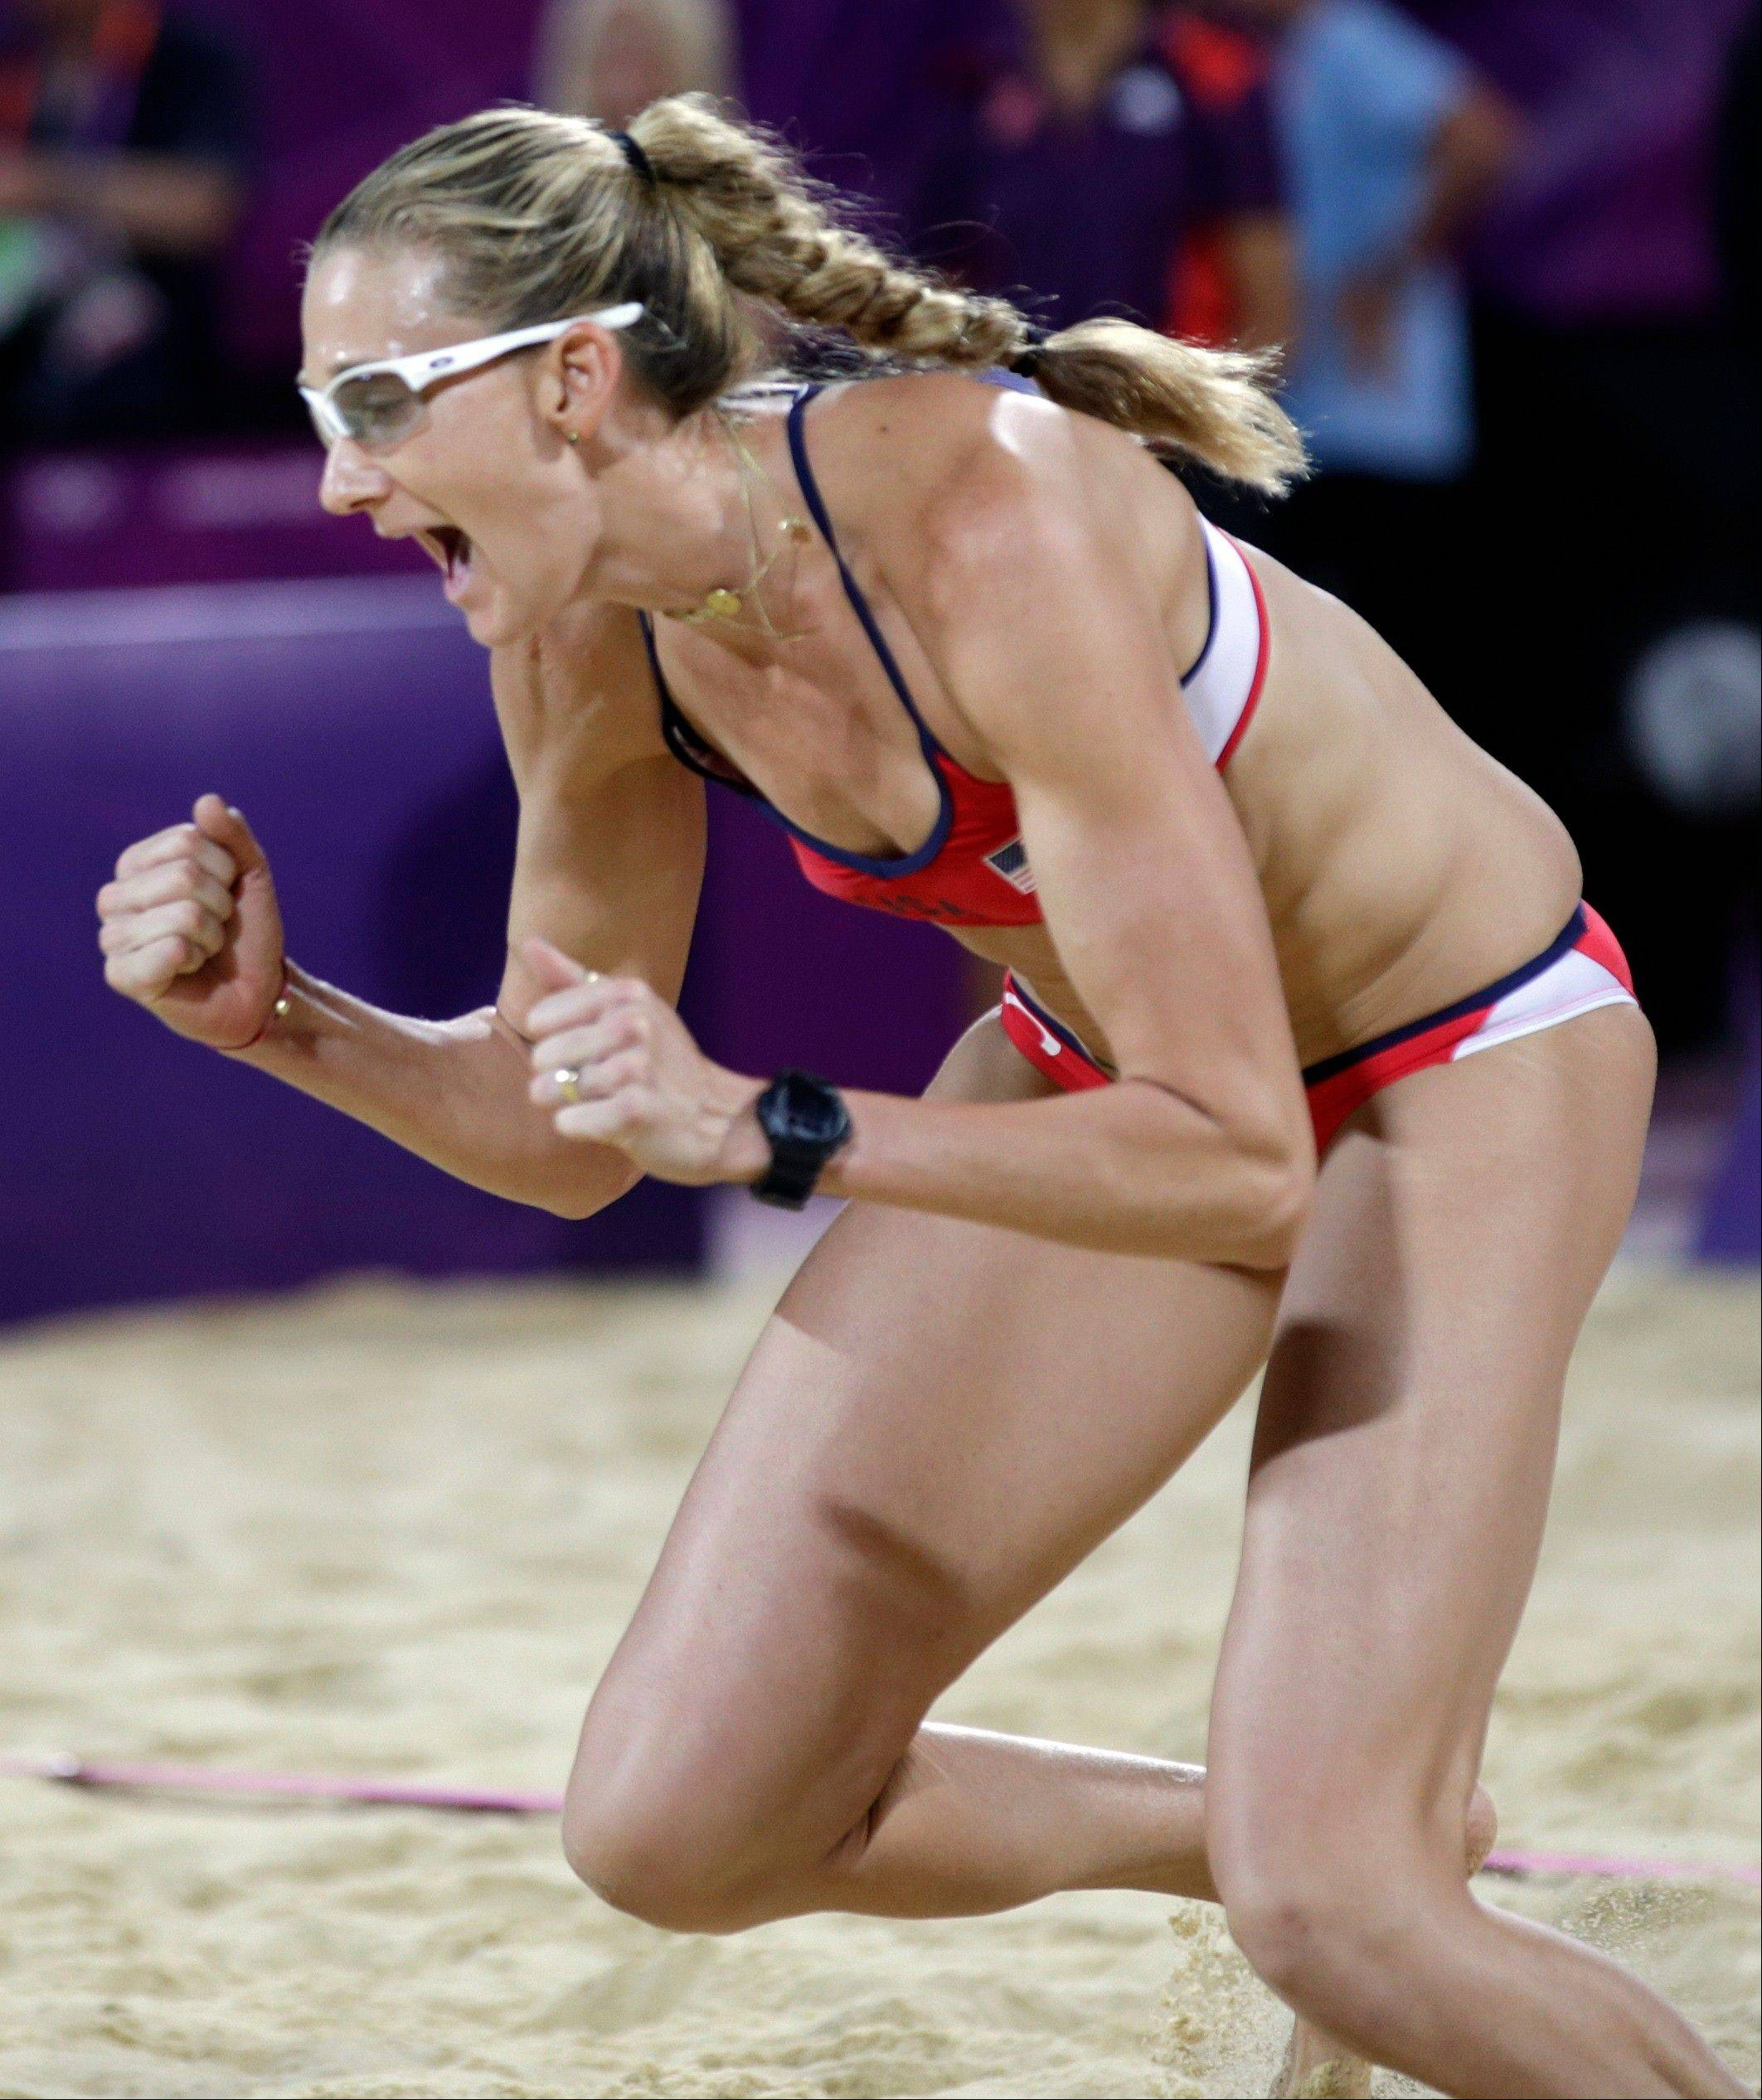 Kerri Walsh Jennings reacts after scoring a point Wednesday during the women's Gold Medal beach volleyball match.